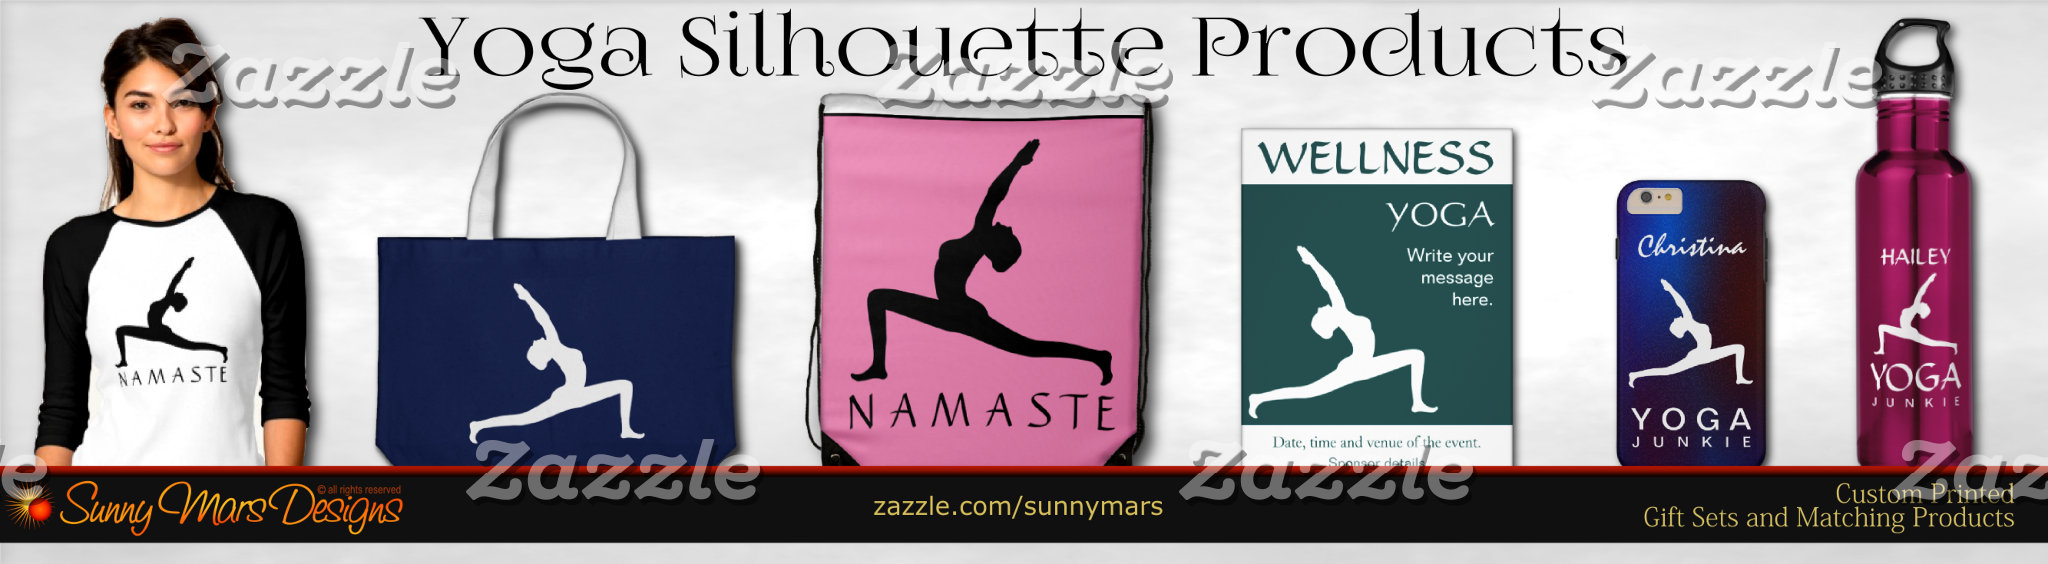 Yoga Woman Posing Profile Silhouette Product Set Collection